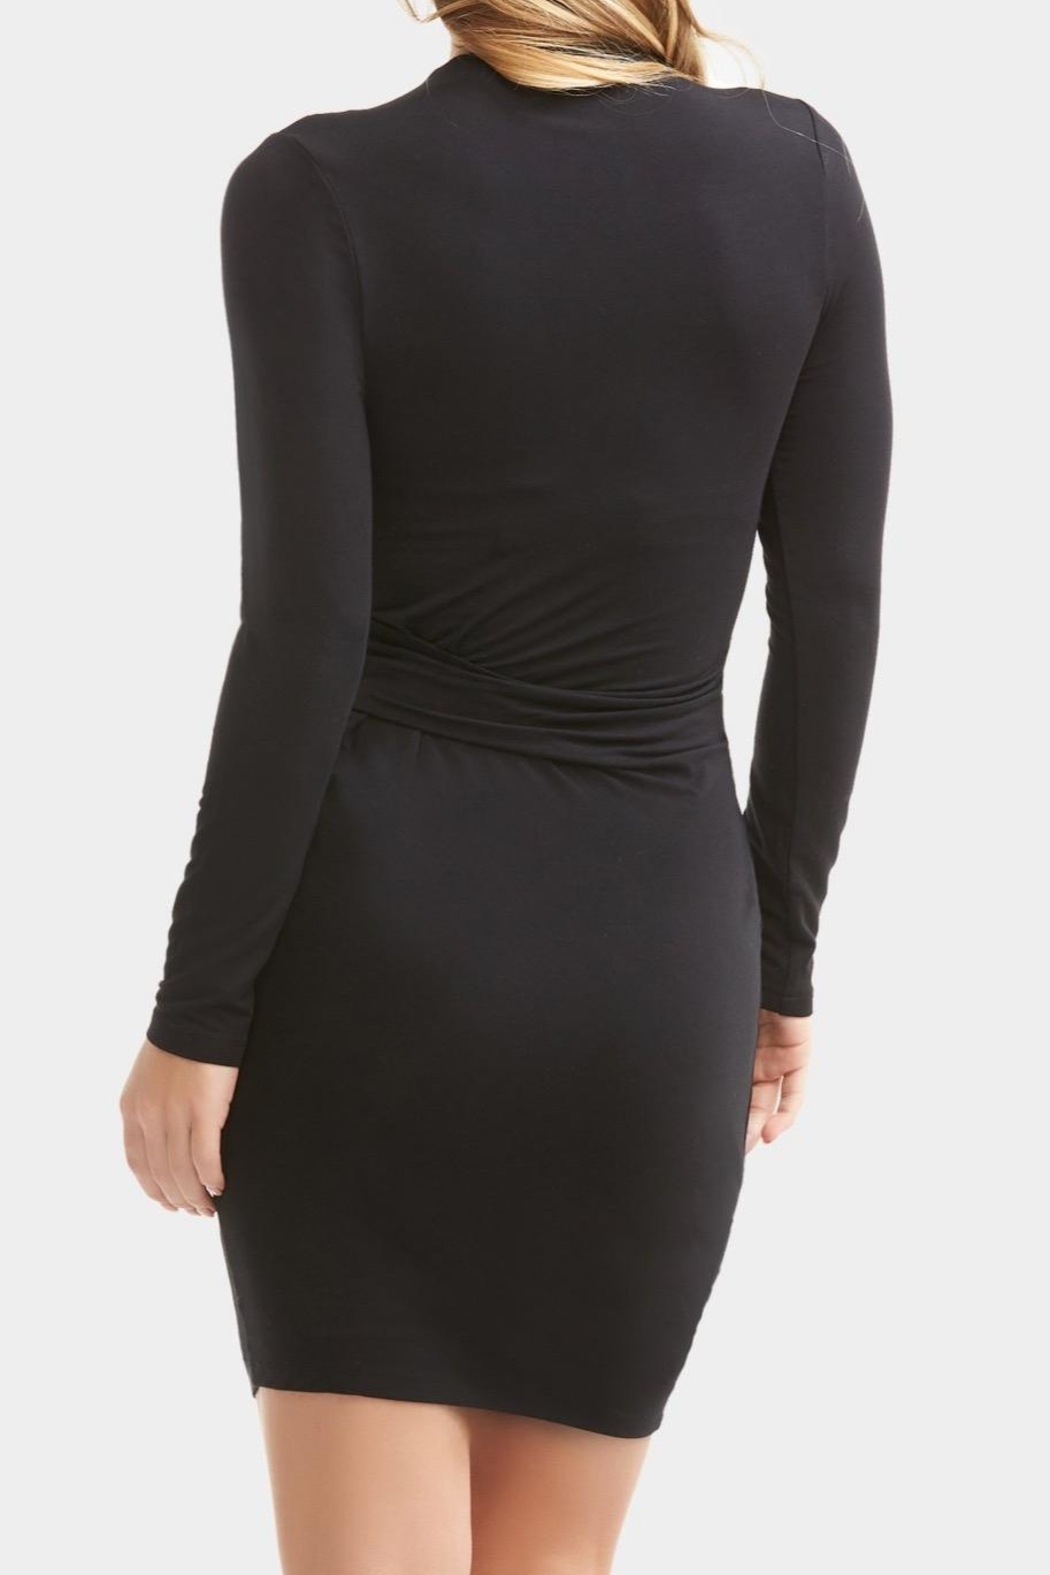 Tart Collections Marlyn Dress - Front Full Image